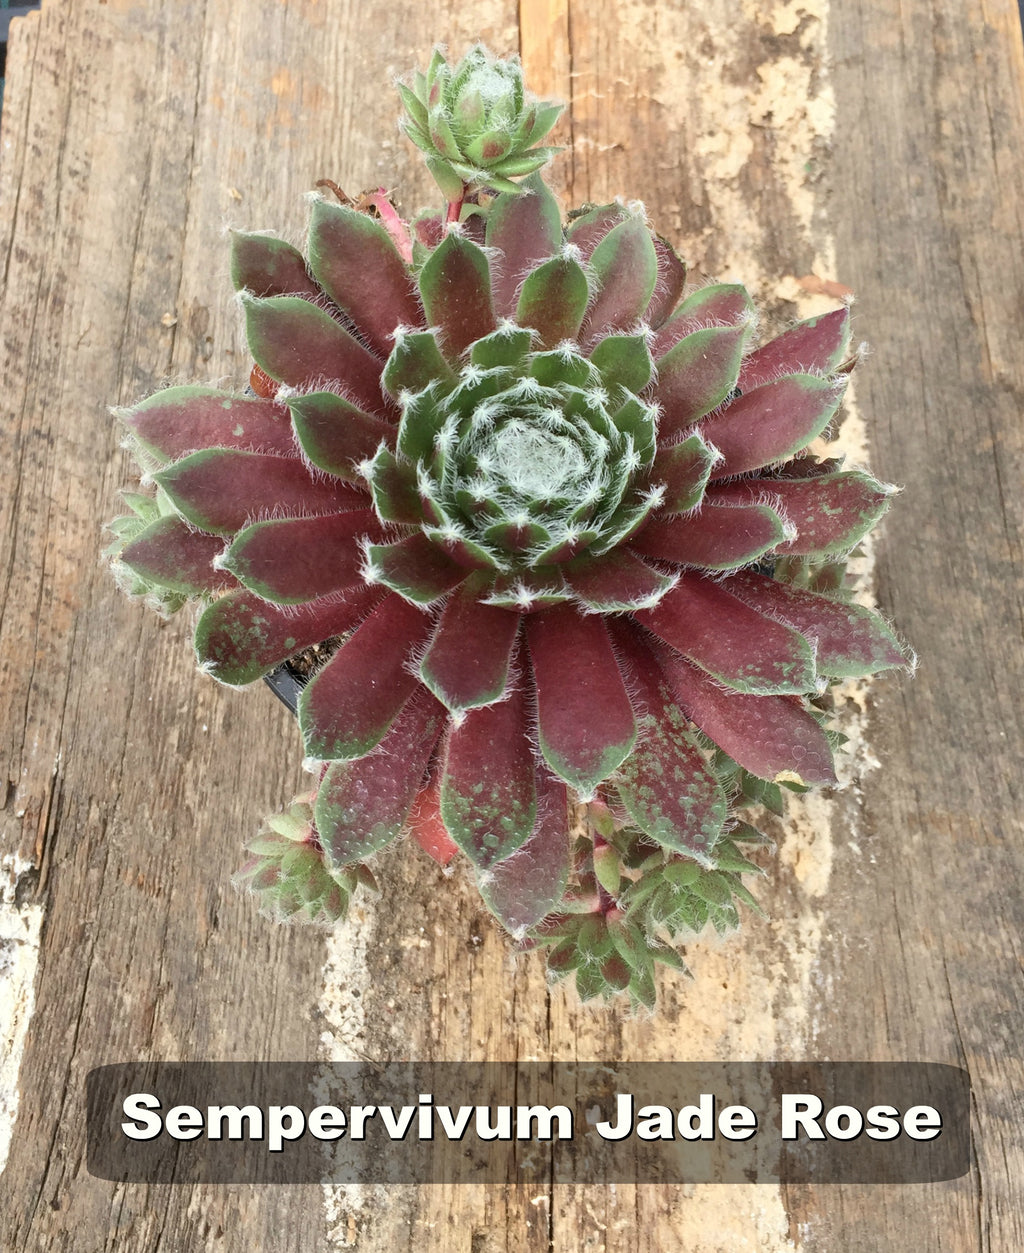 deer resistant drought tolerant drought tolerant perennial full sun perennial Groundcover Hardy Perennials hens and chicks jade rose sempervivum sempervivum succulent succulent drought-tolerant